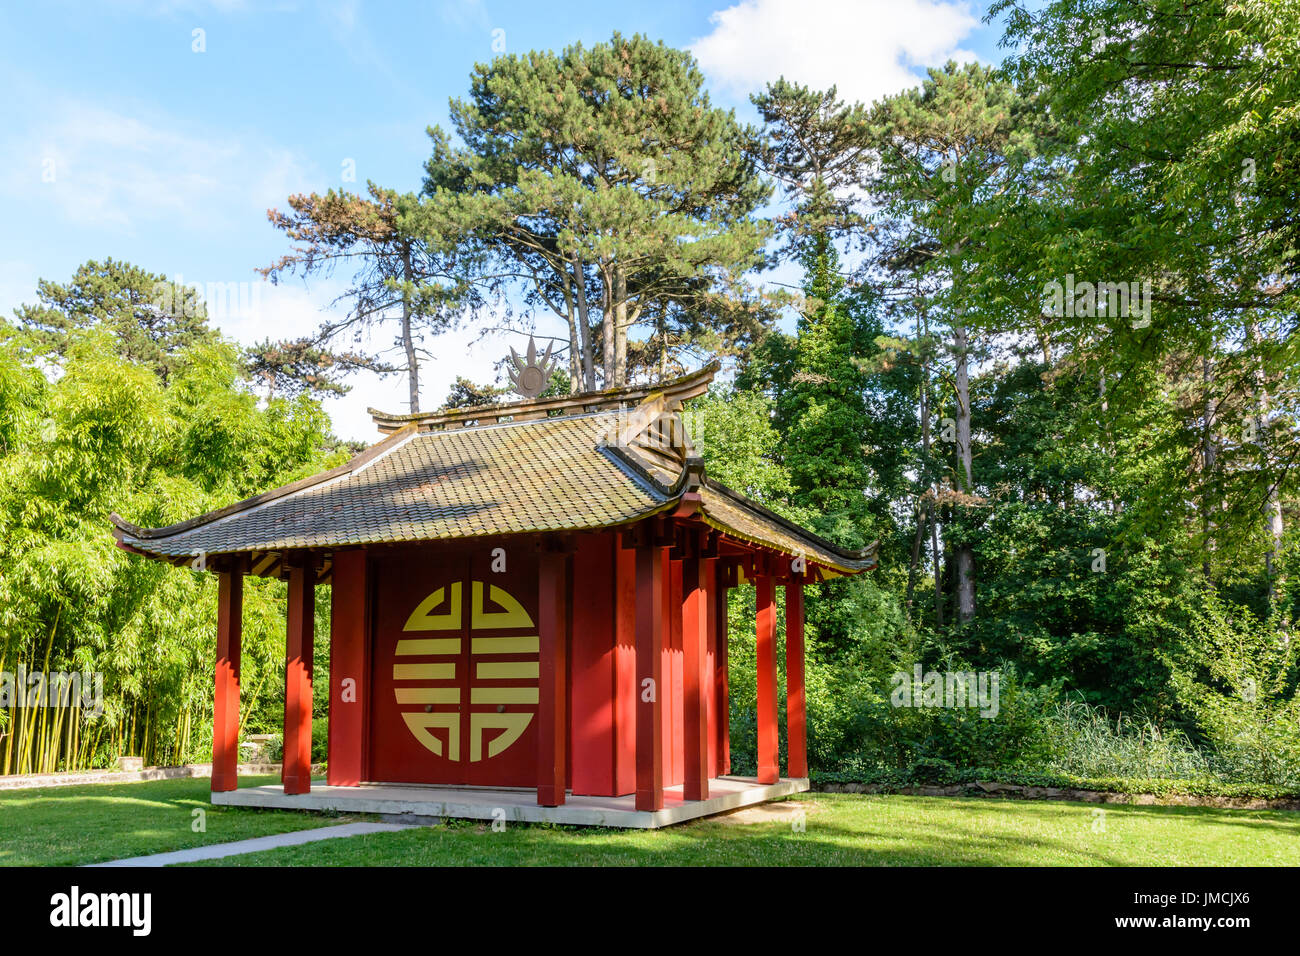 General view of the Indochinese Memorial Temple in the Garden of Tropical Agronomy in Paris, dedicated to the Vietnamese soldiers who died for France. - Stock Image